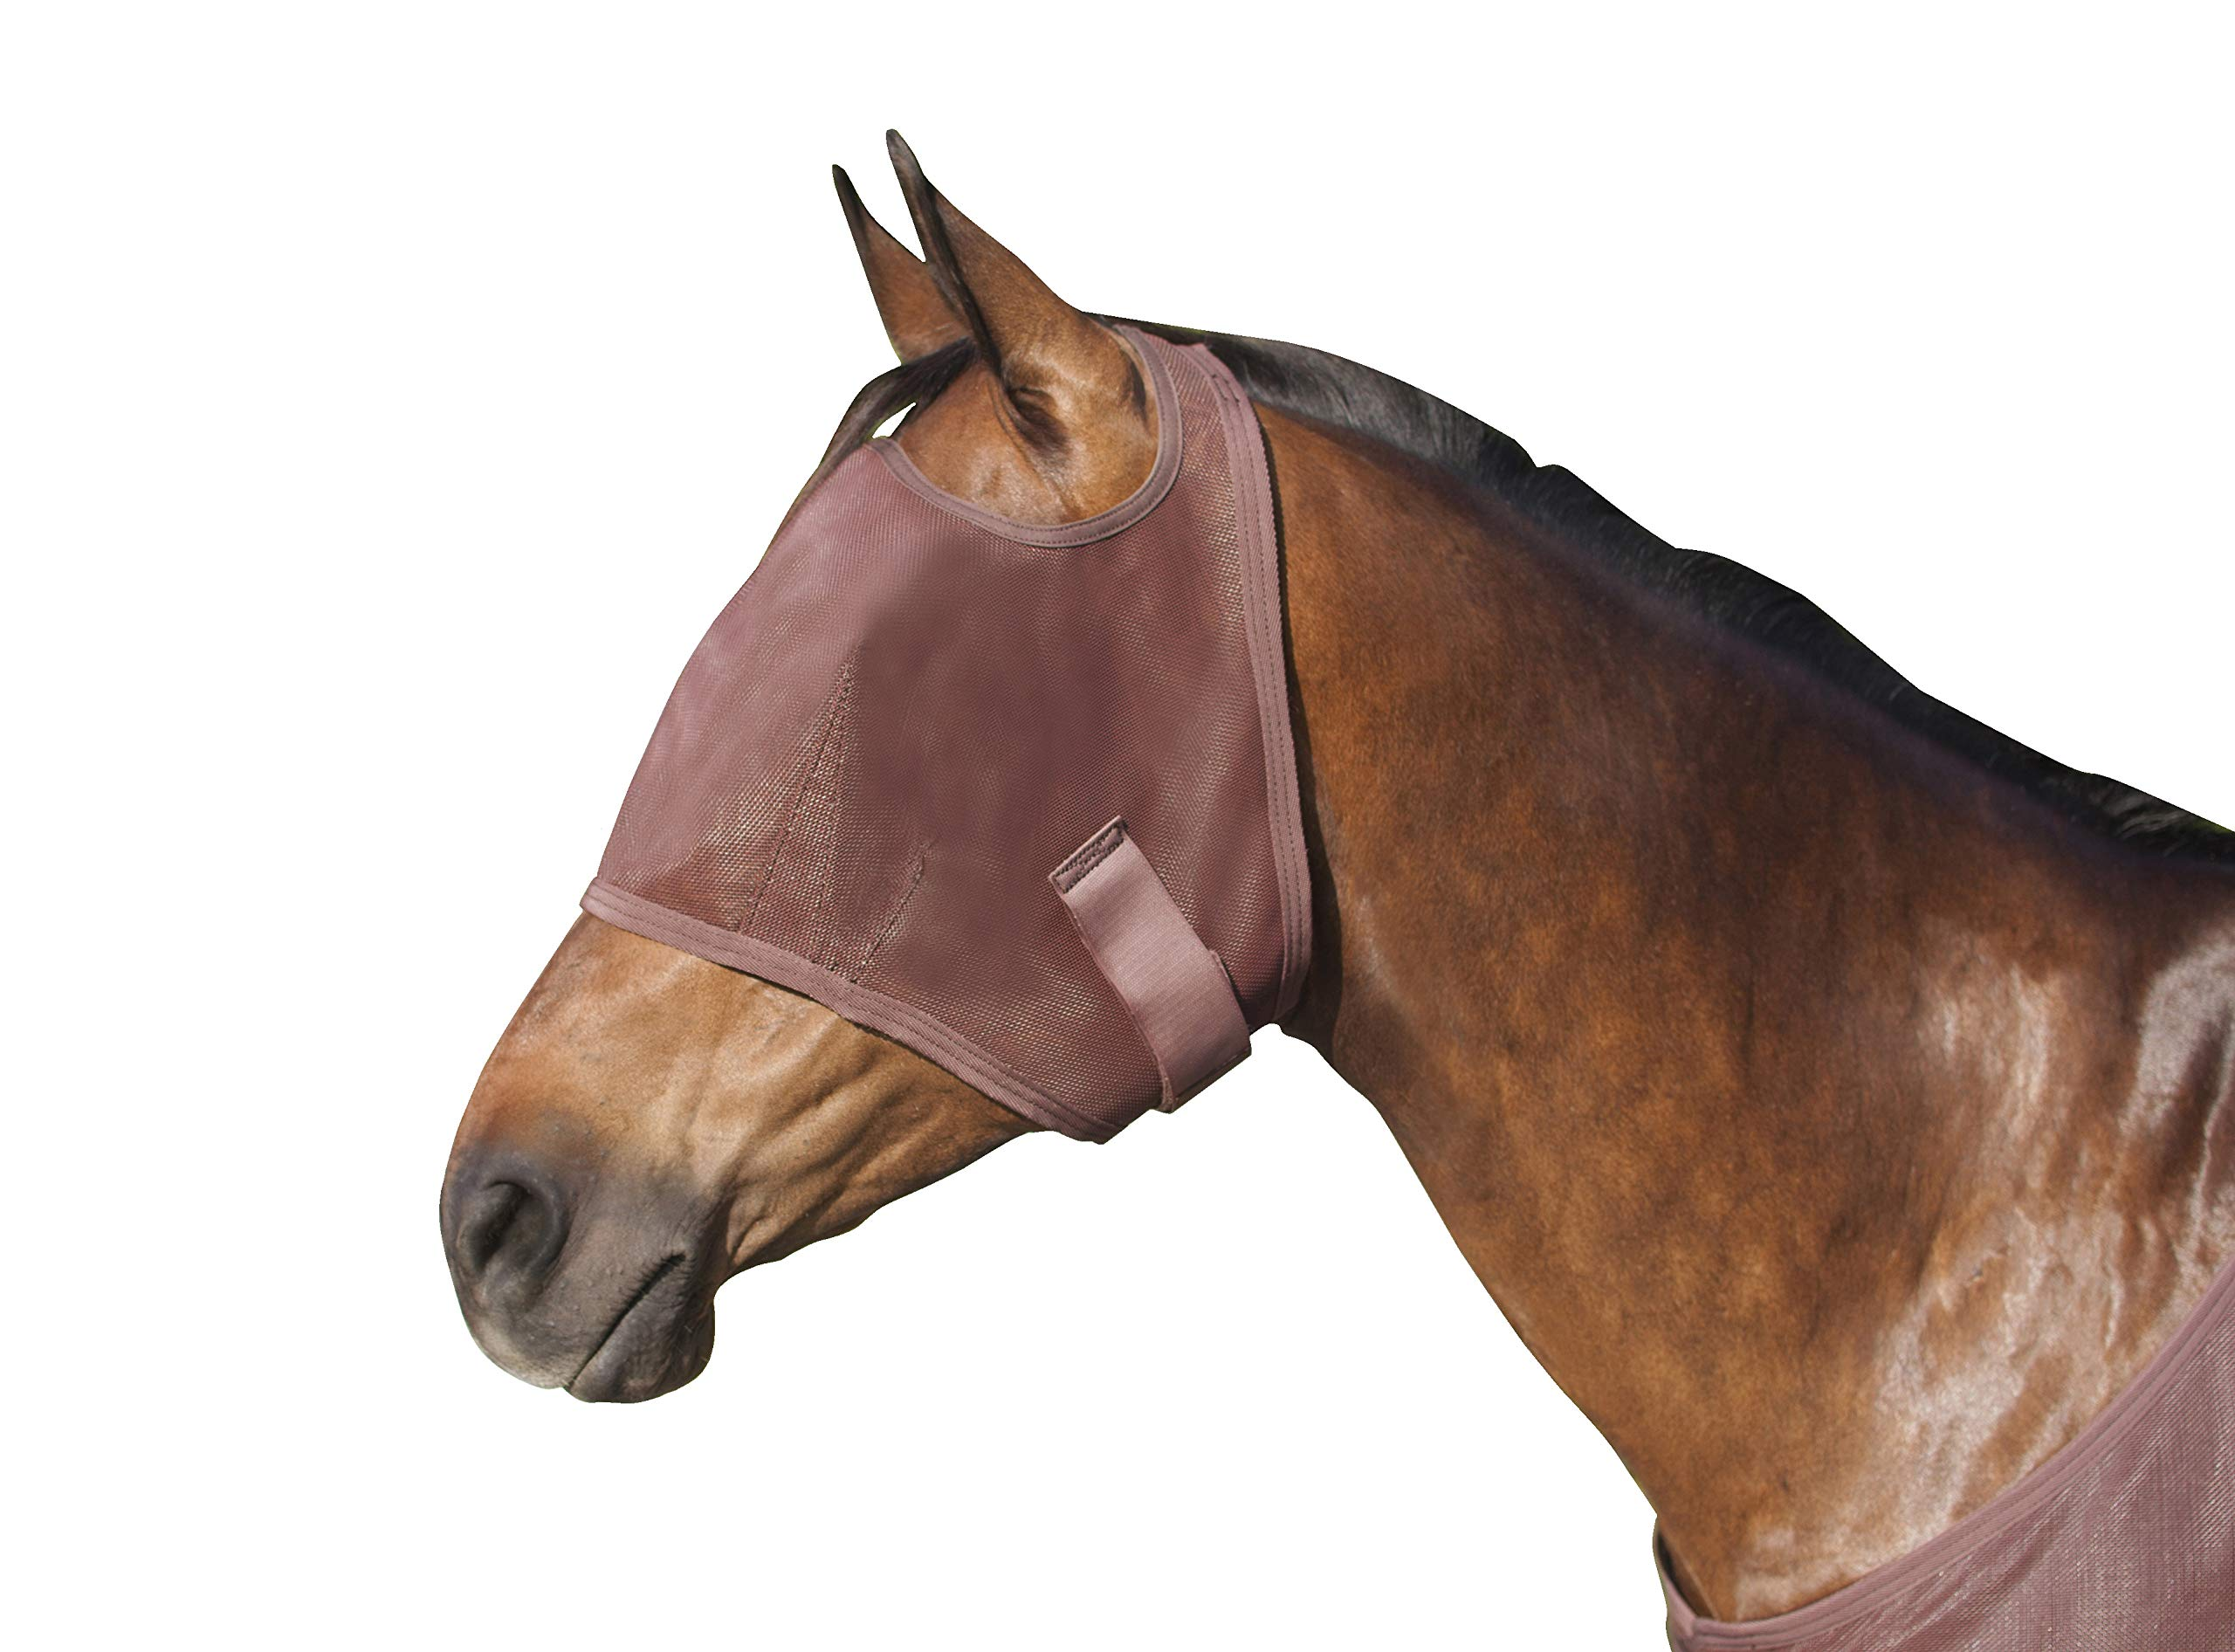 Kensington Natural Fly Mask with Web Trim - Protects Horses Face Eyes from Biting Insects and UV Rays While Allowing Full Visibility - Ears and Forelock Able to Come Through The Mask (Large, Bay) by Kensington Protective Products